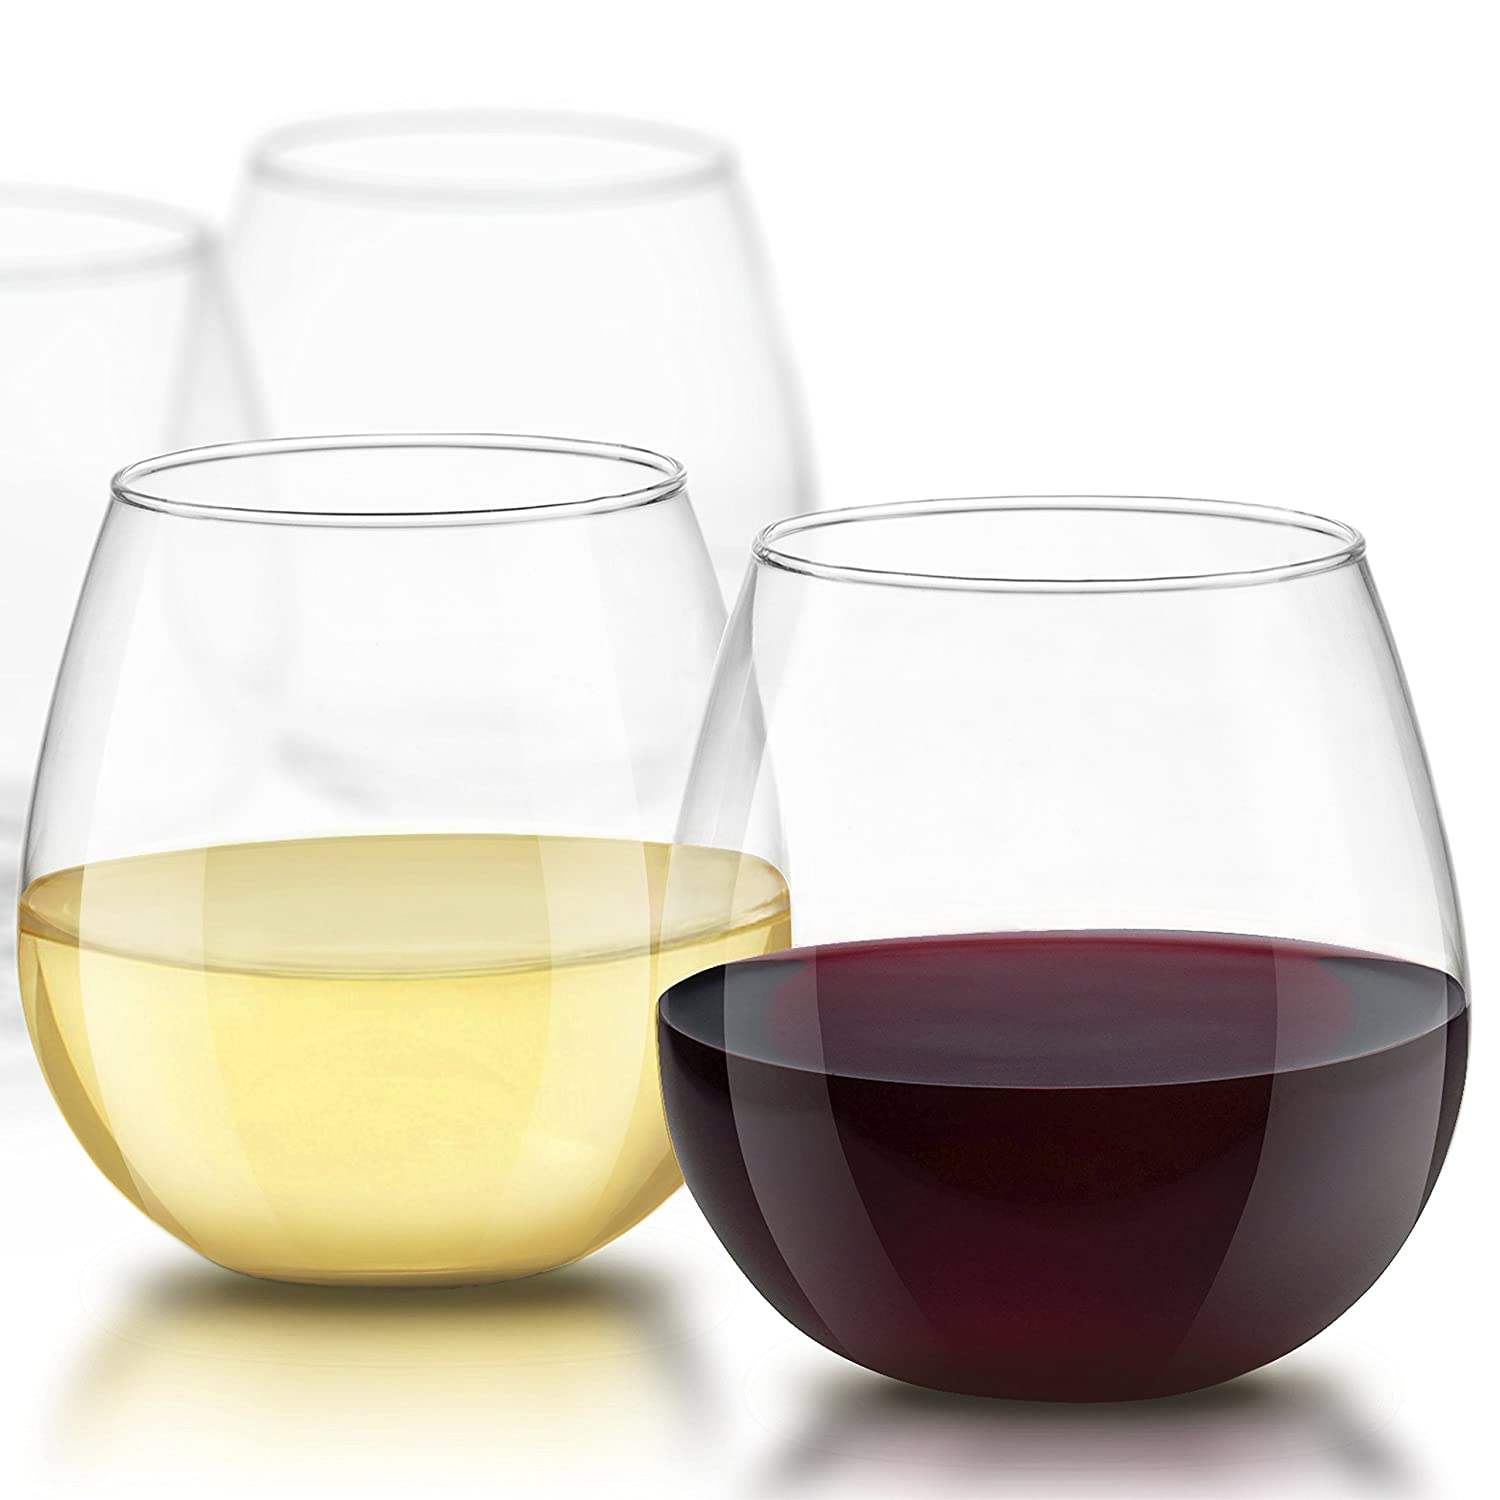 JoyJolt Spirits Stemless Wine Glasses 15 Ounce, Set of 4 Great For White Or Red Wine Mother's Day Wine Gifts Wines Glass Sets JG10210